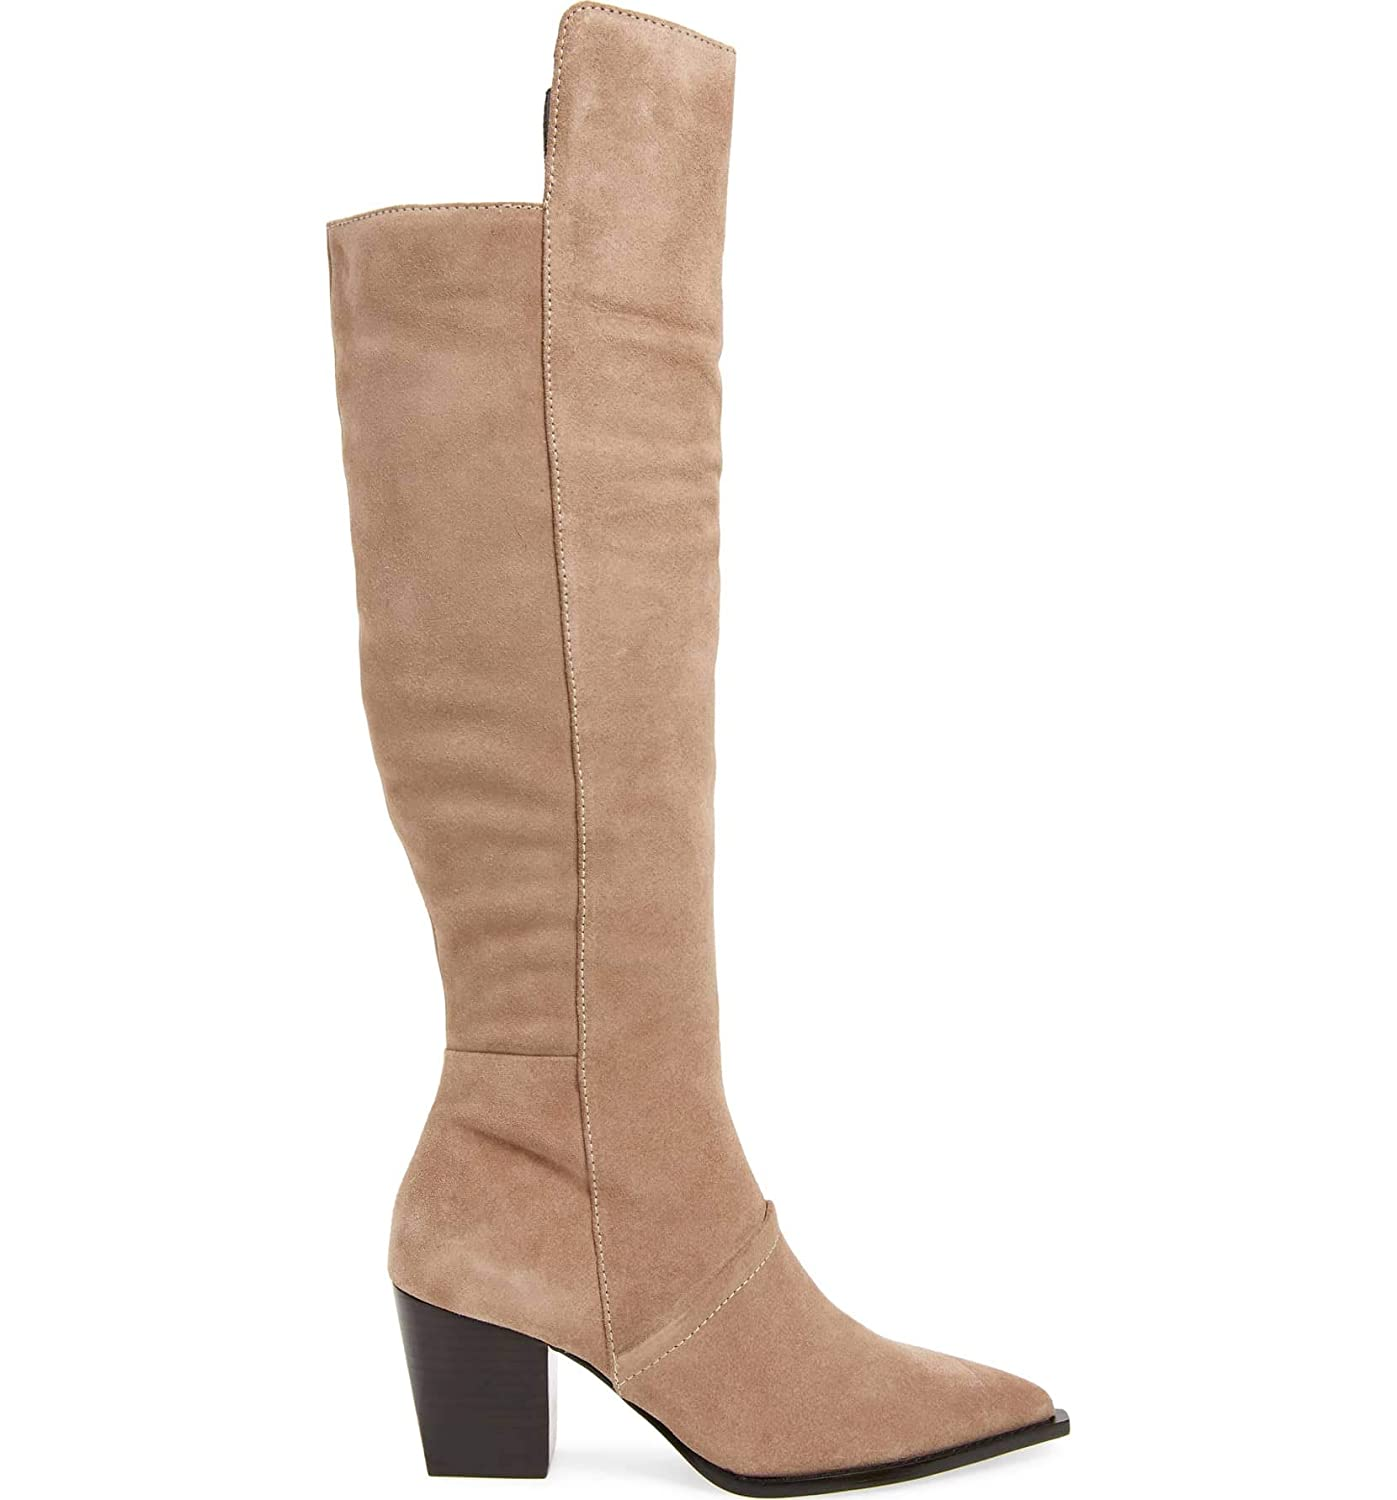 5ab65839a009 Amazon.com | Lust For Life Tania Knee High Boot Taupe Leather Block Heel  Designer Dress Boots | Knee-High